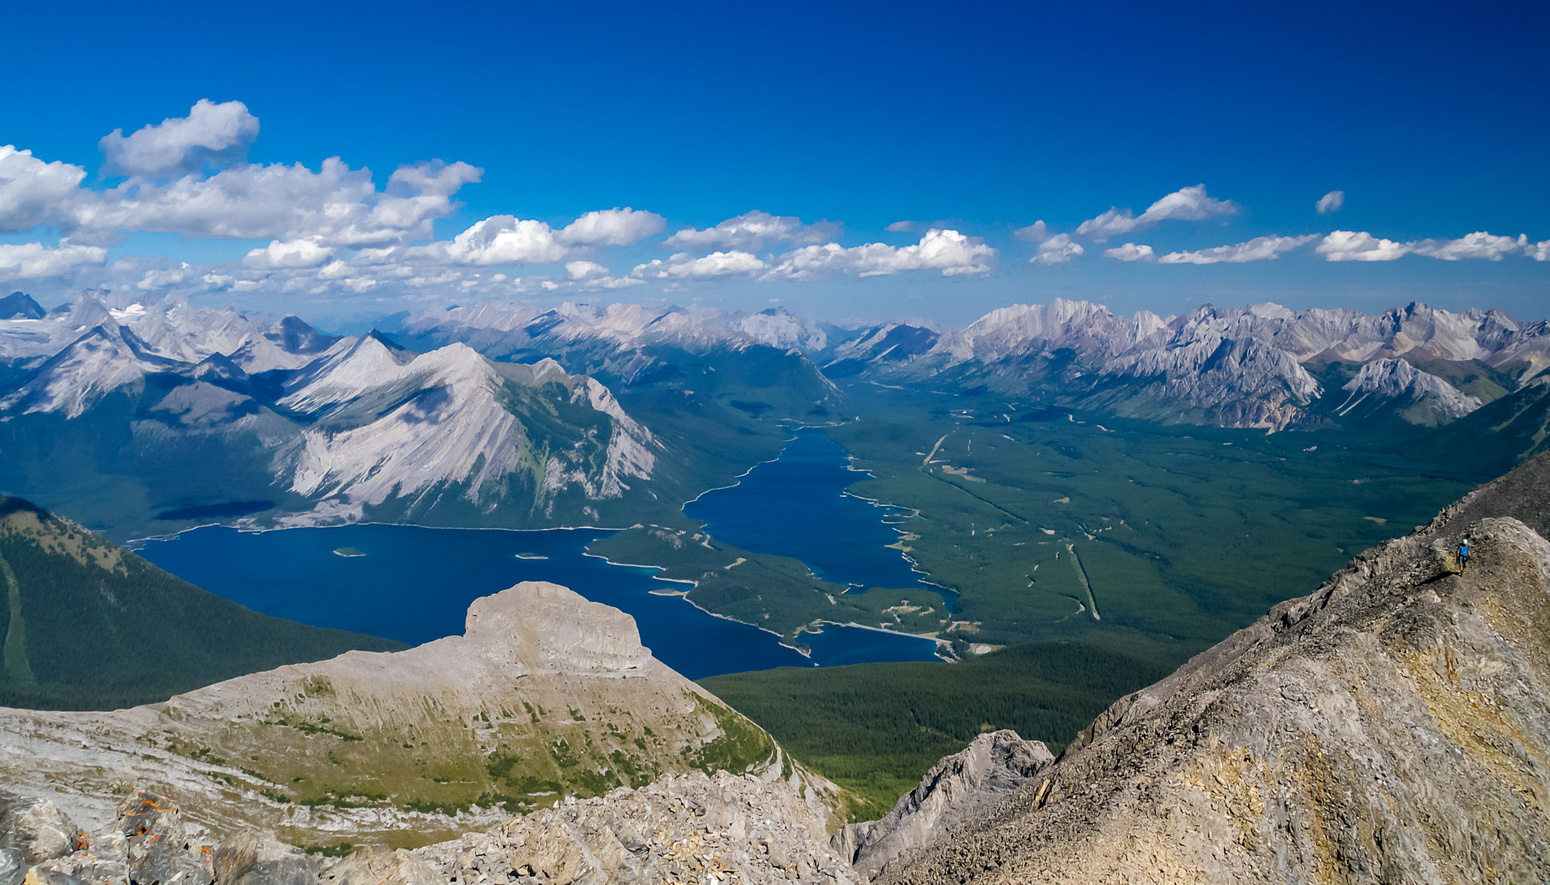 Incredible views over the Kananaskis Lakes with The Turret in the foreground.